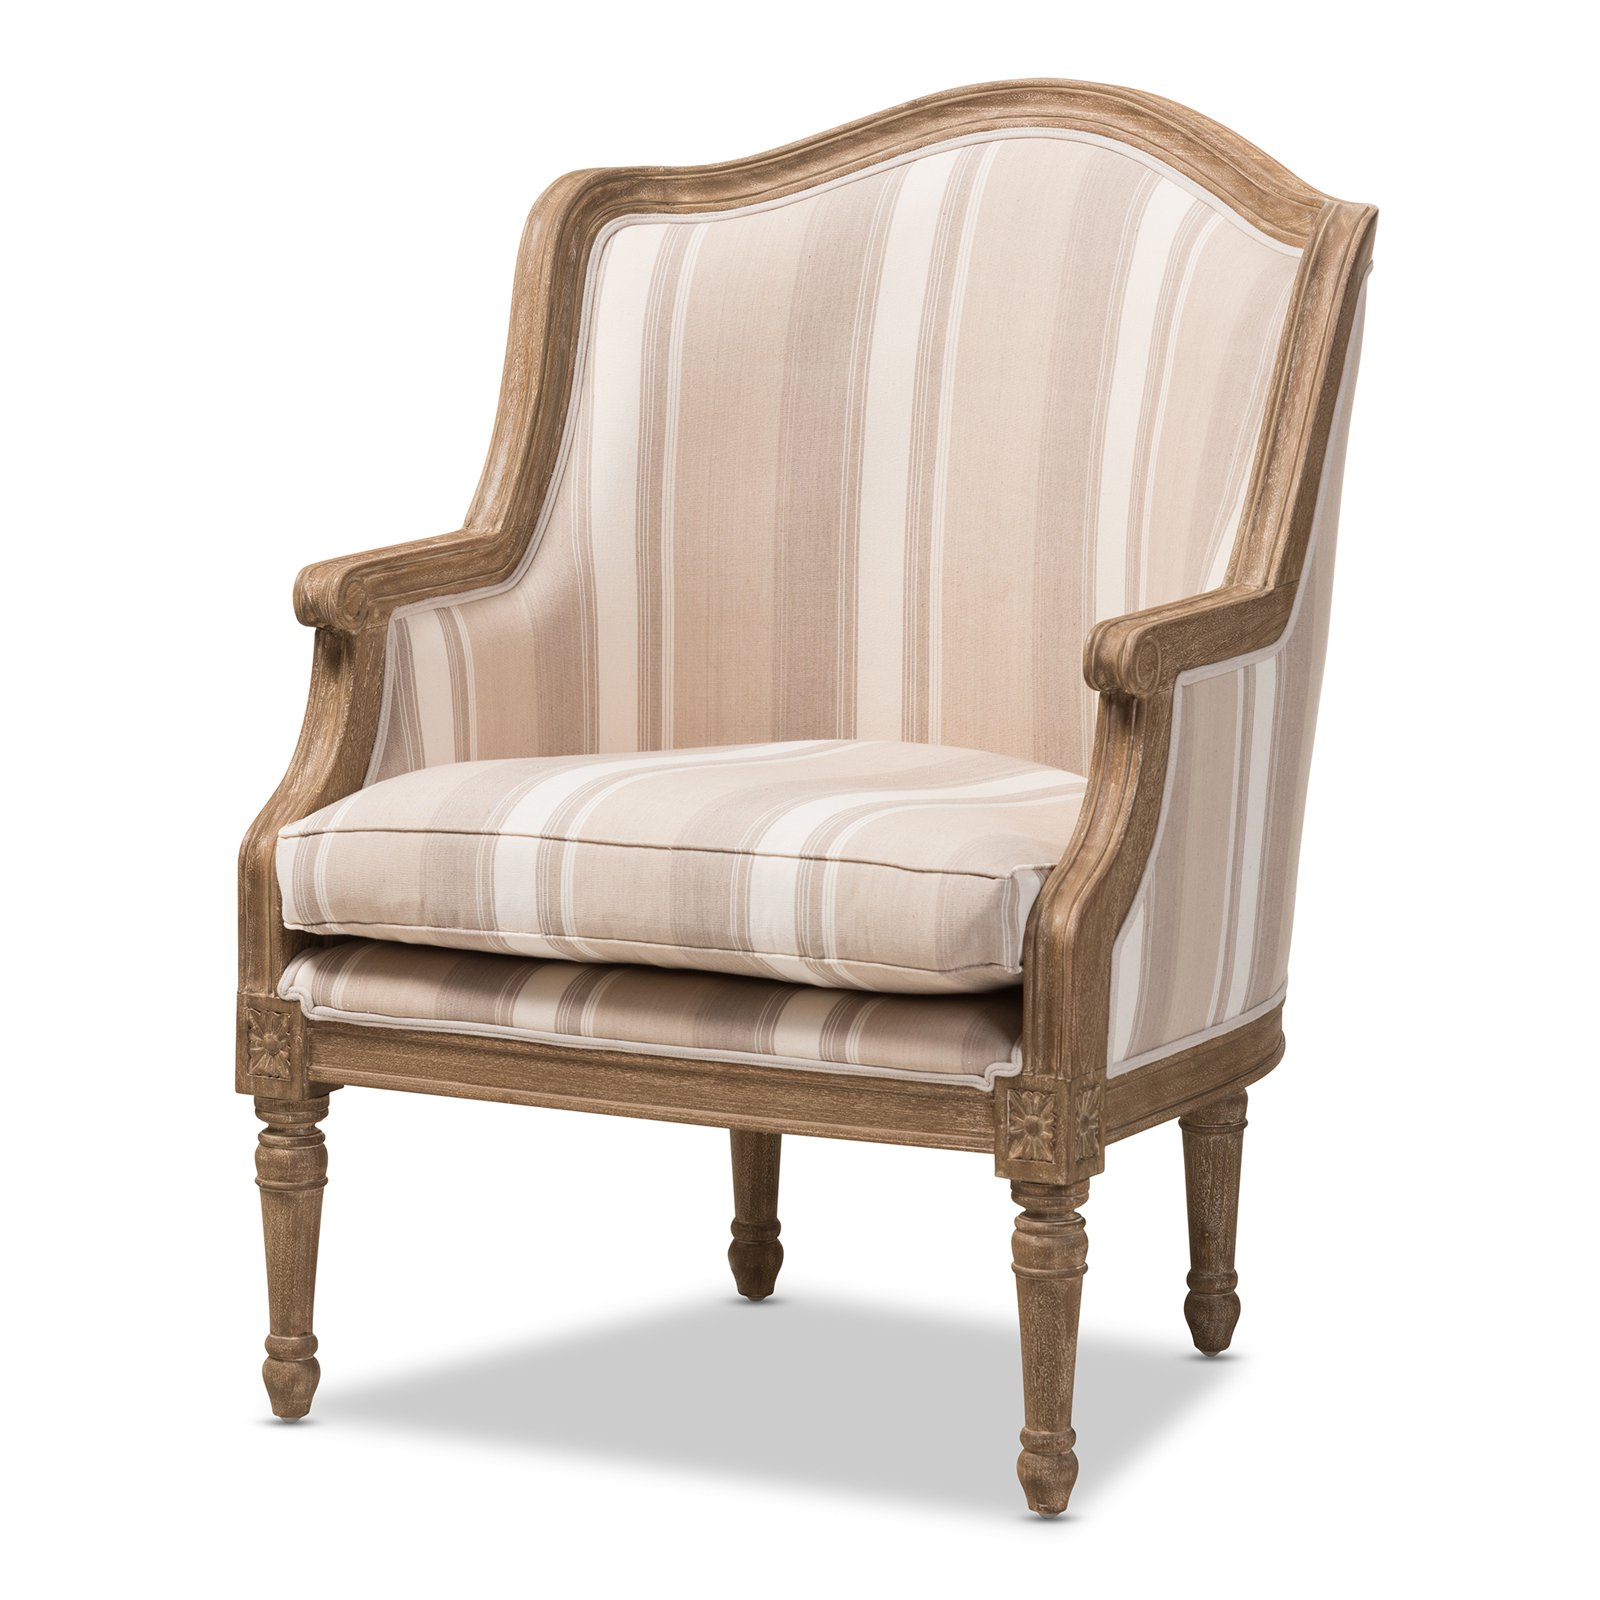 Baxton Studio Charlemagne Traditional French Accent Chair, Oak with Brown Stripe